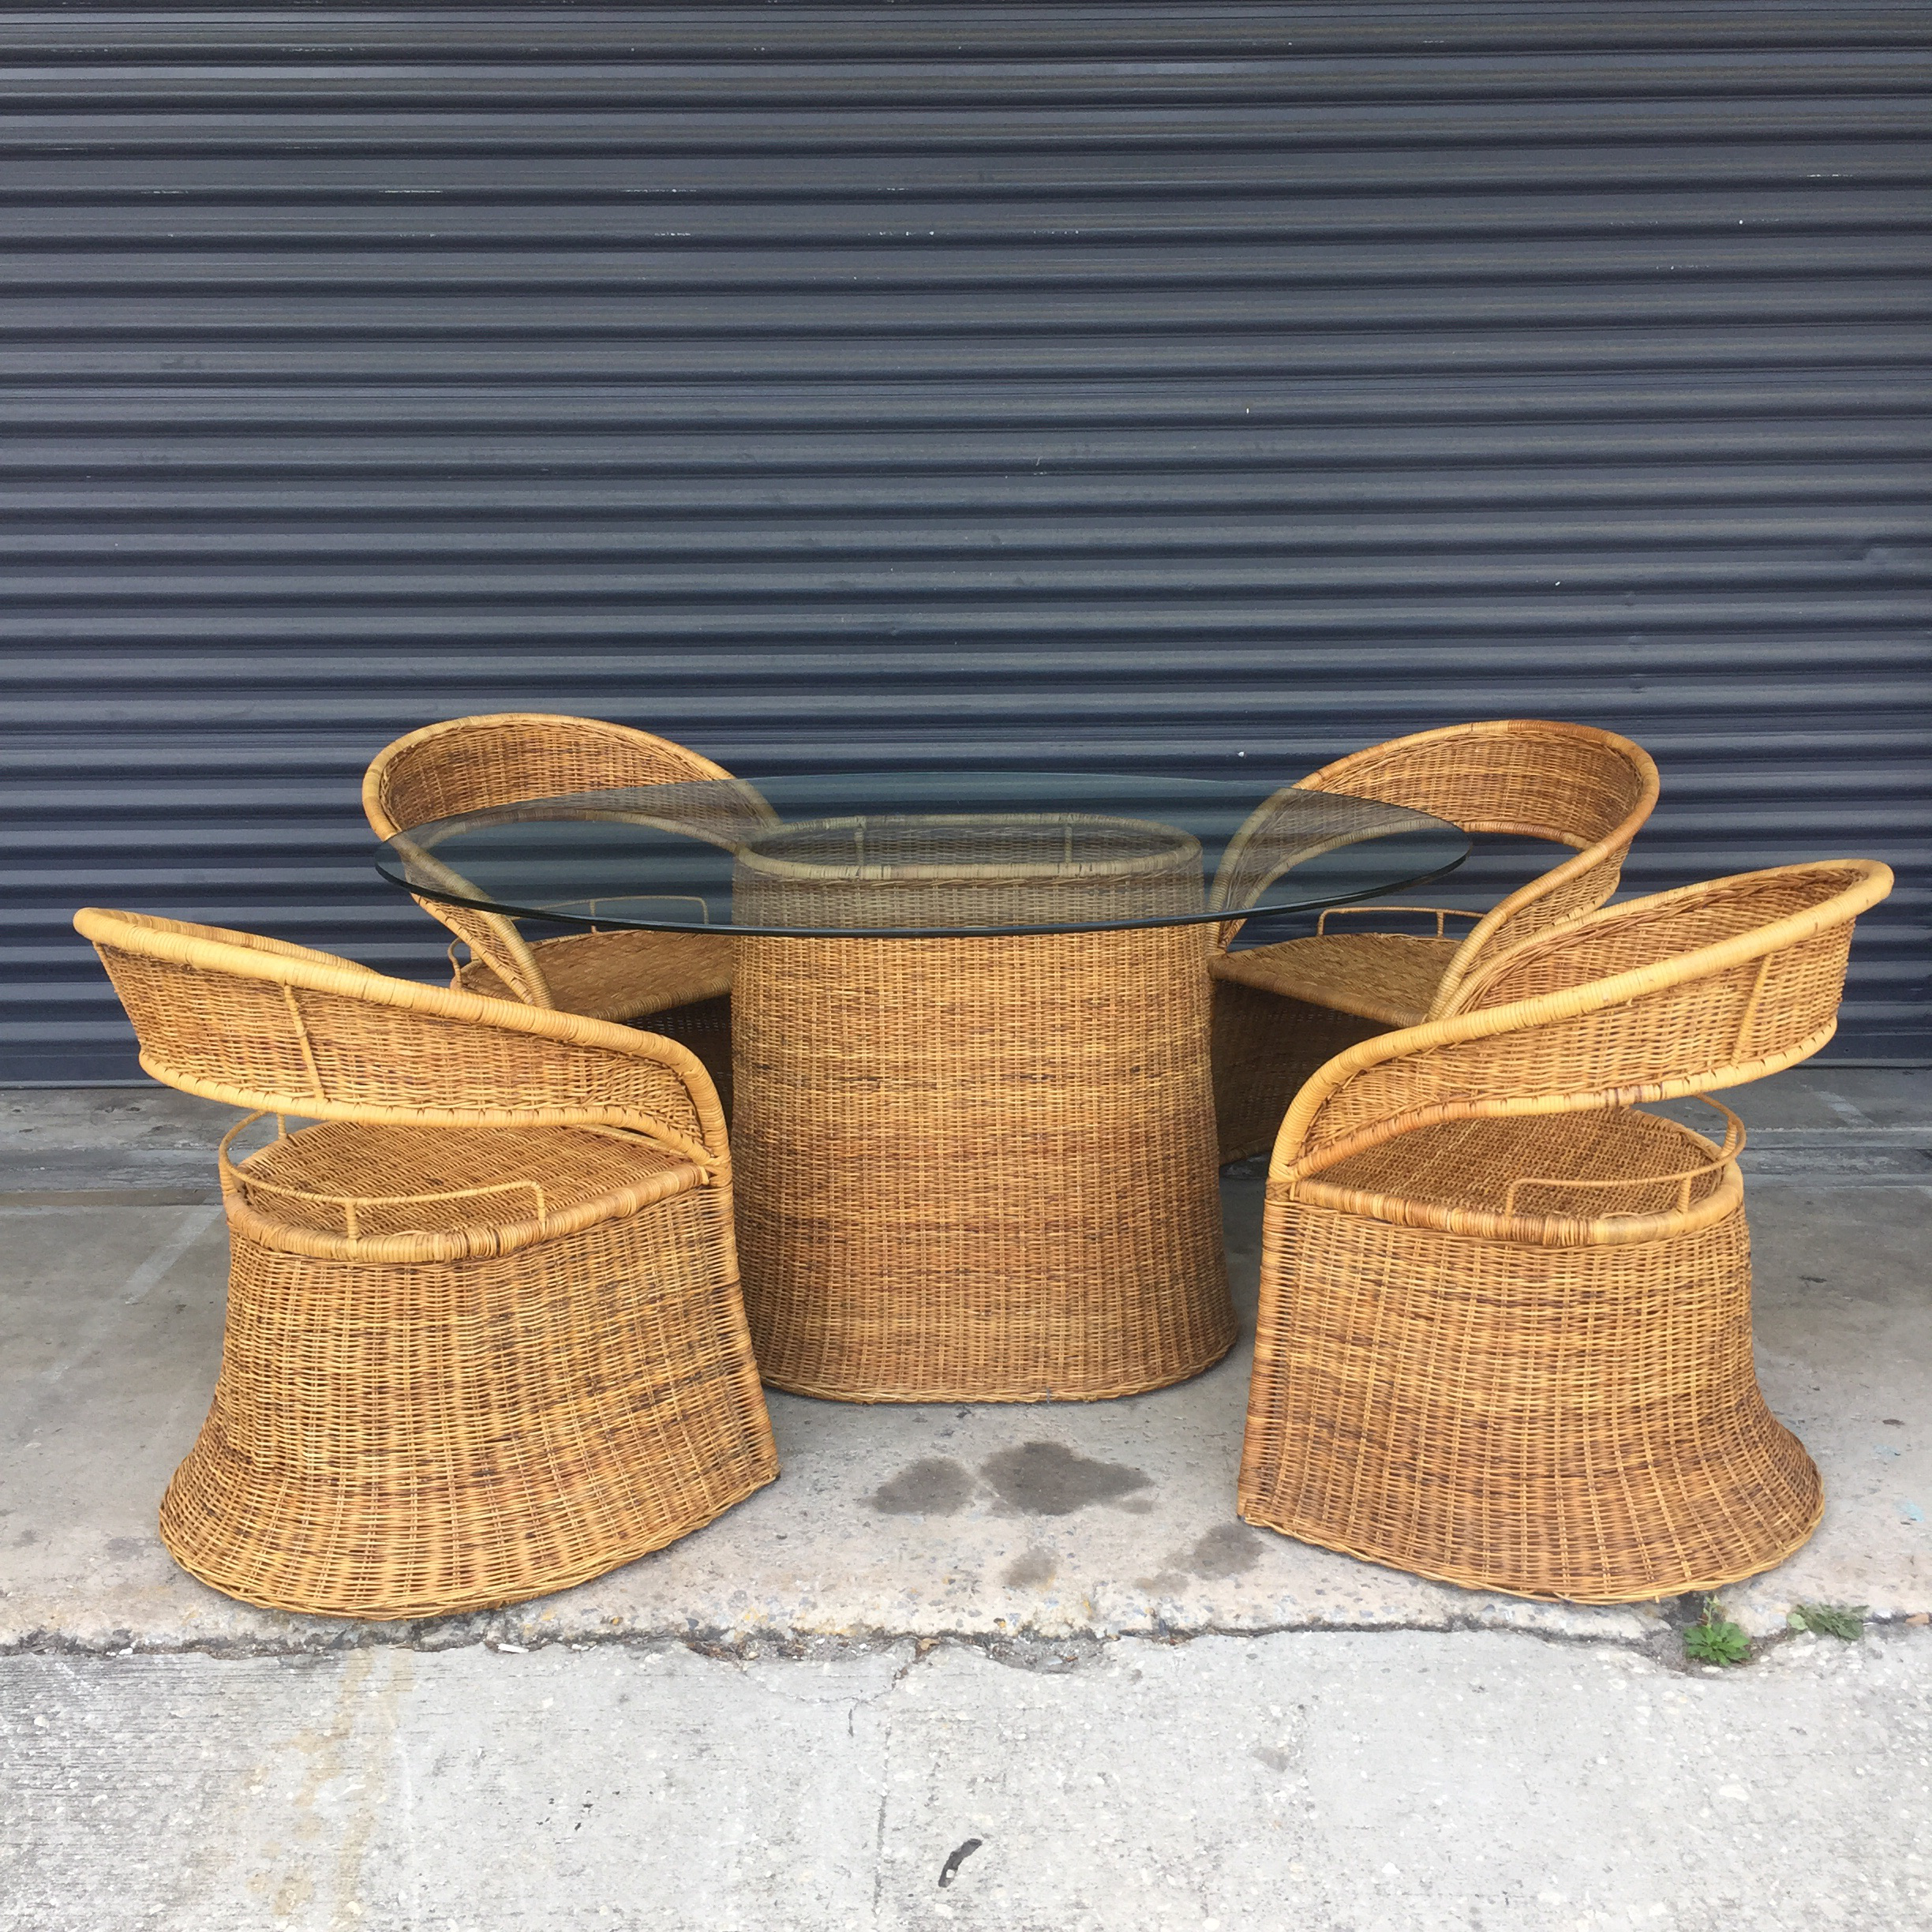 Vintage Wicker Dining Set. Oval Column Table Base With Oval Glass Top. Four  Round